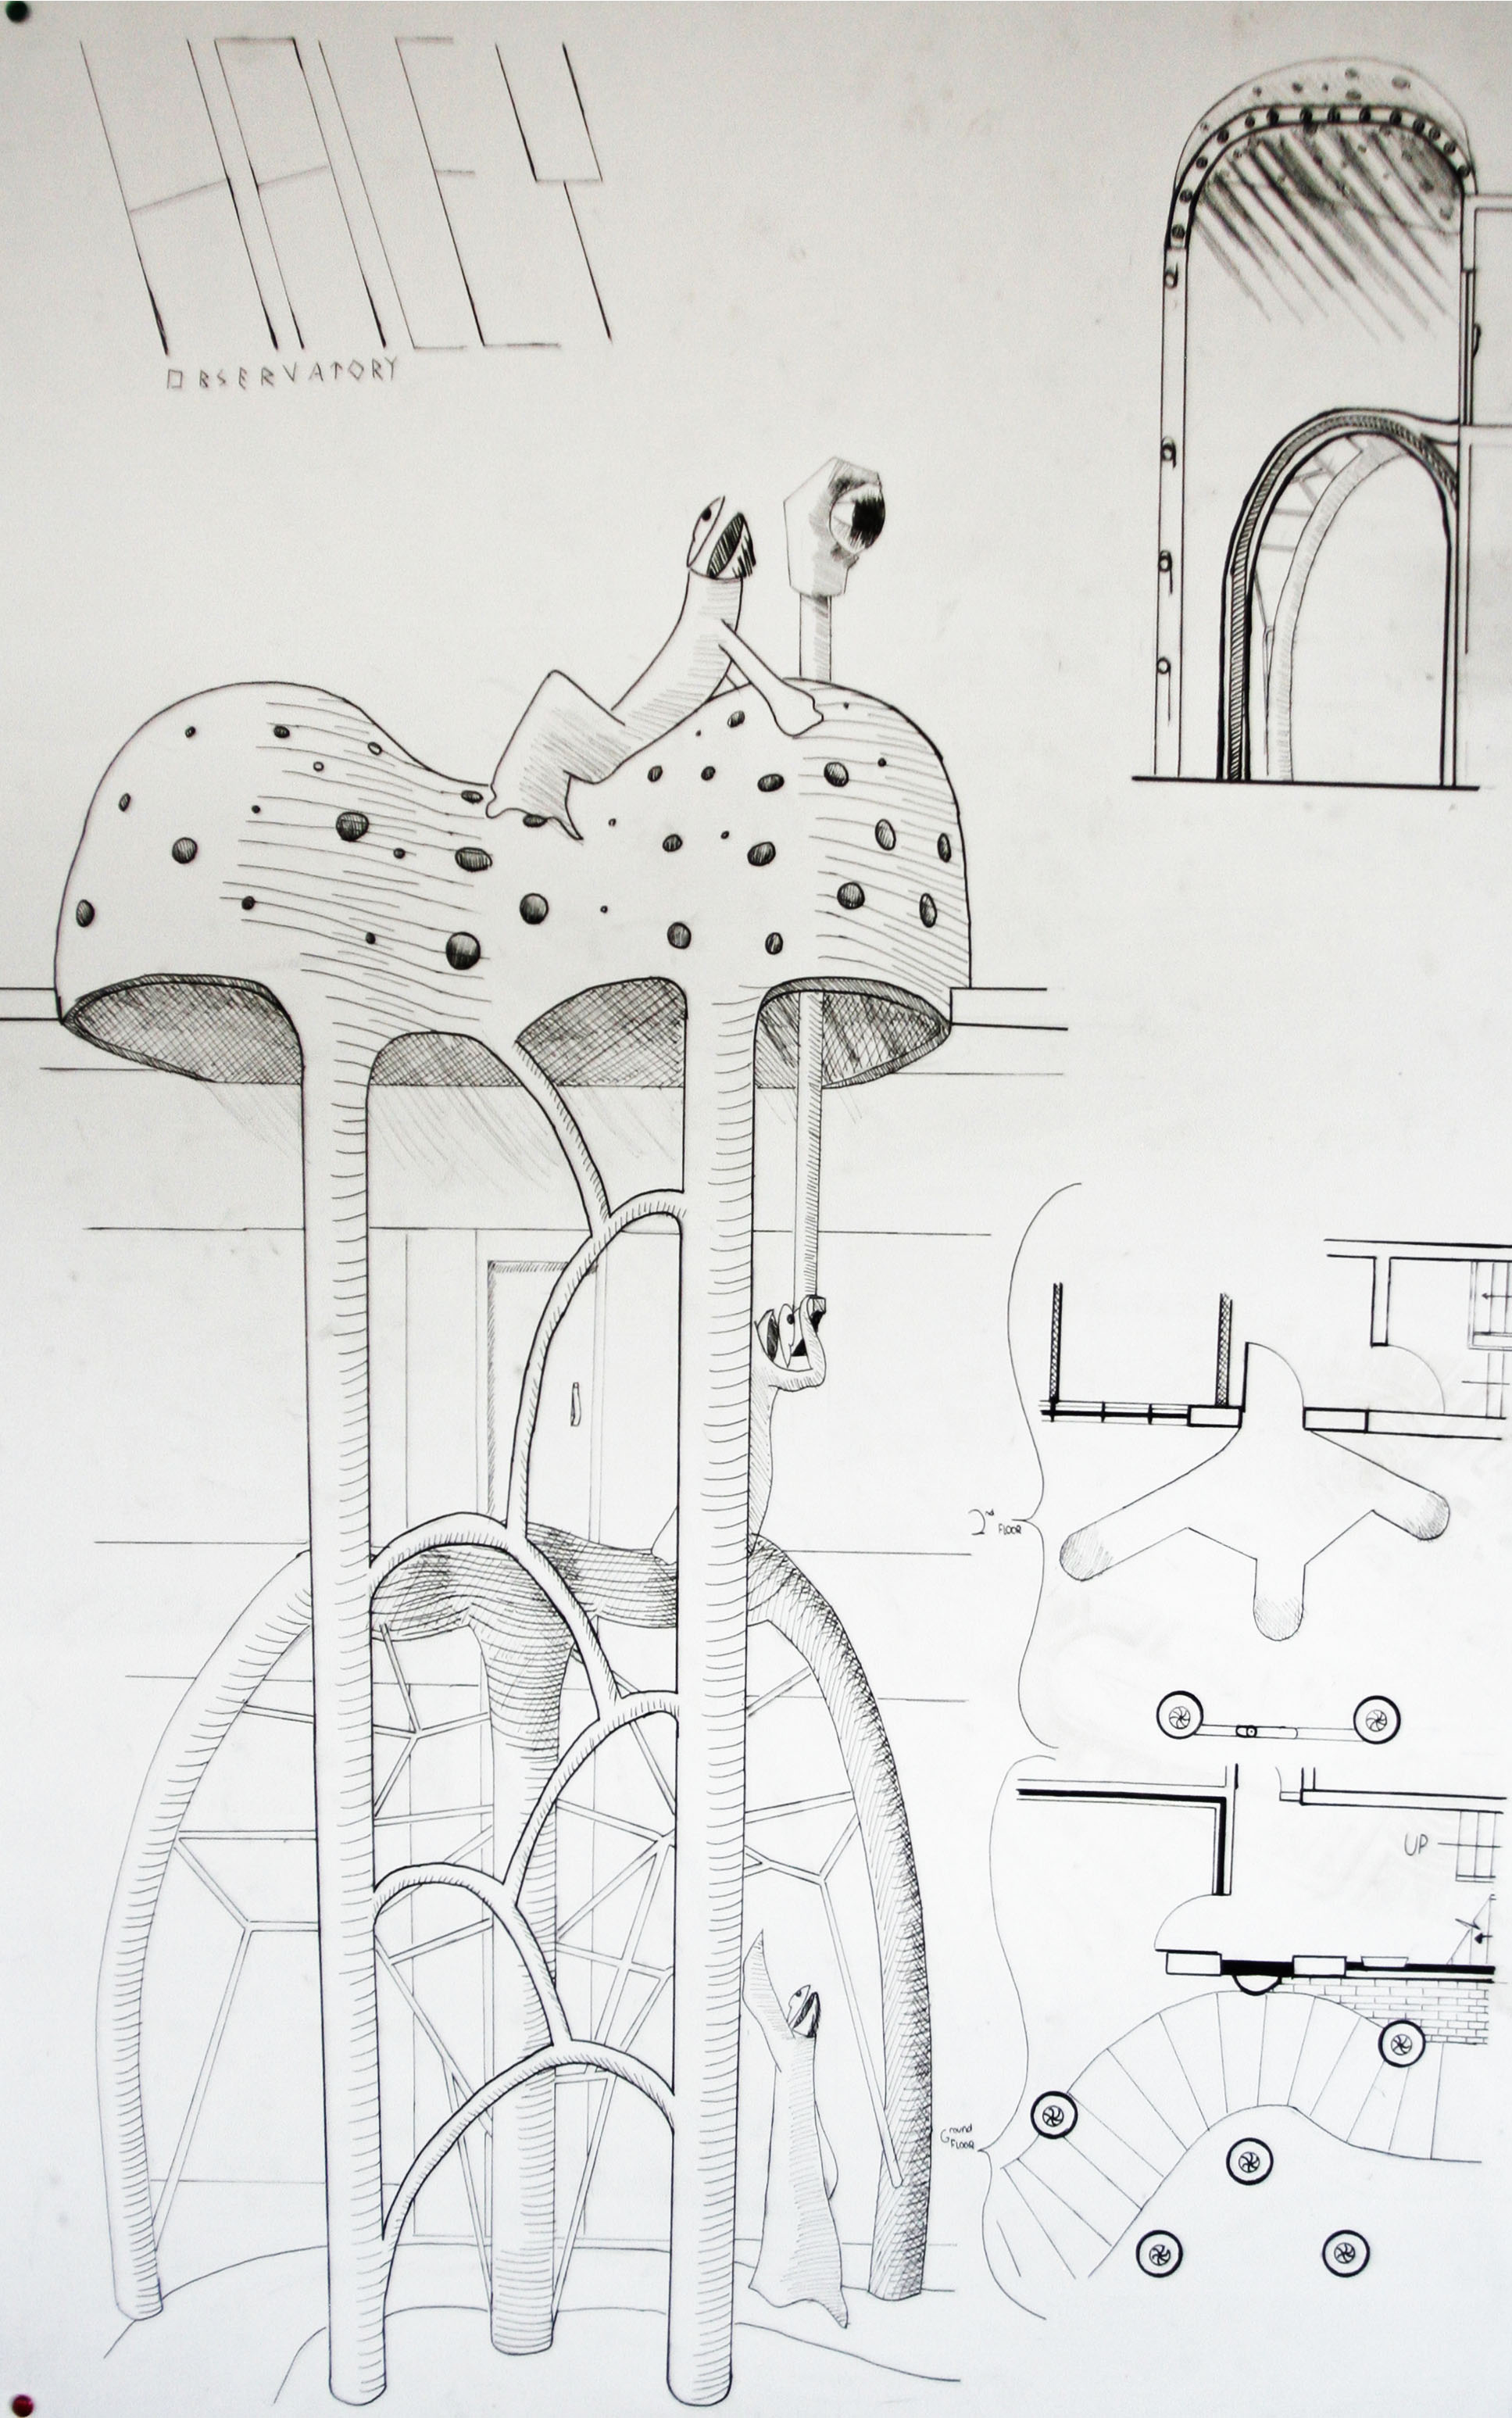 Final design of the observatory. Dome converts to outdoor seating area with periscope to view above the nearby buildings